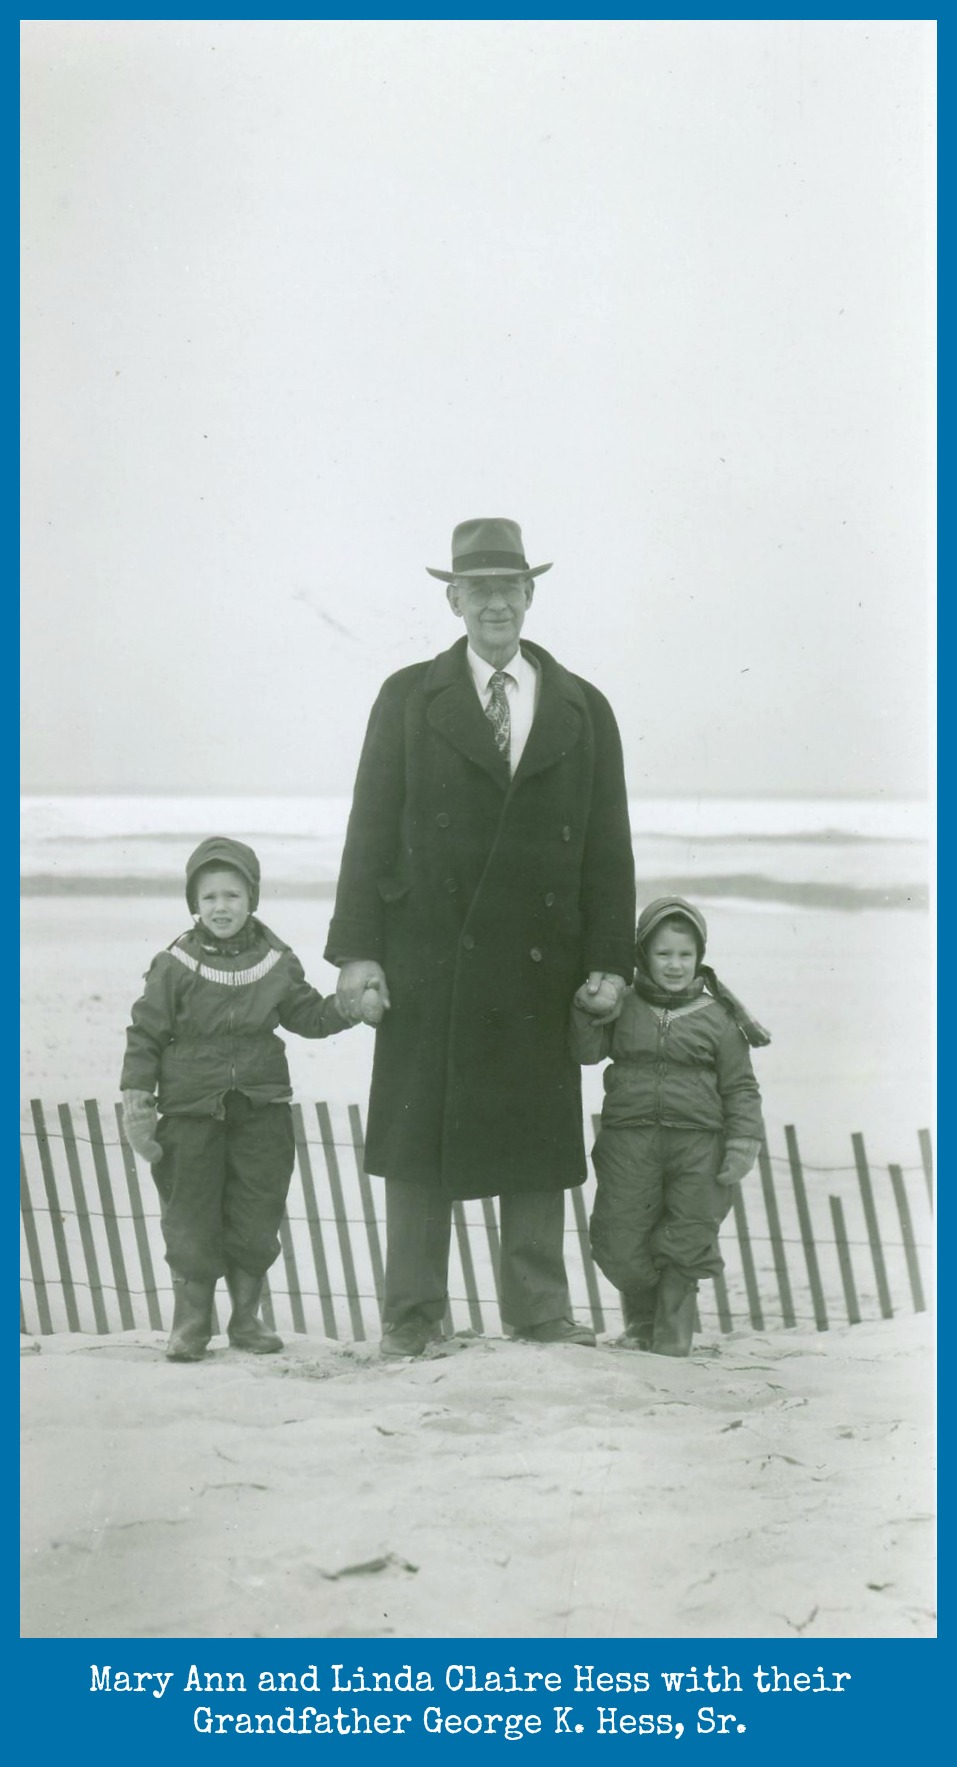 Mary Ann and Linda with Grandfather George K. Hess at Lake Michigan